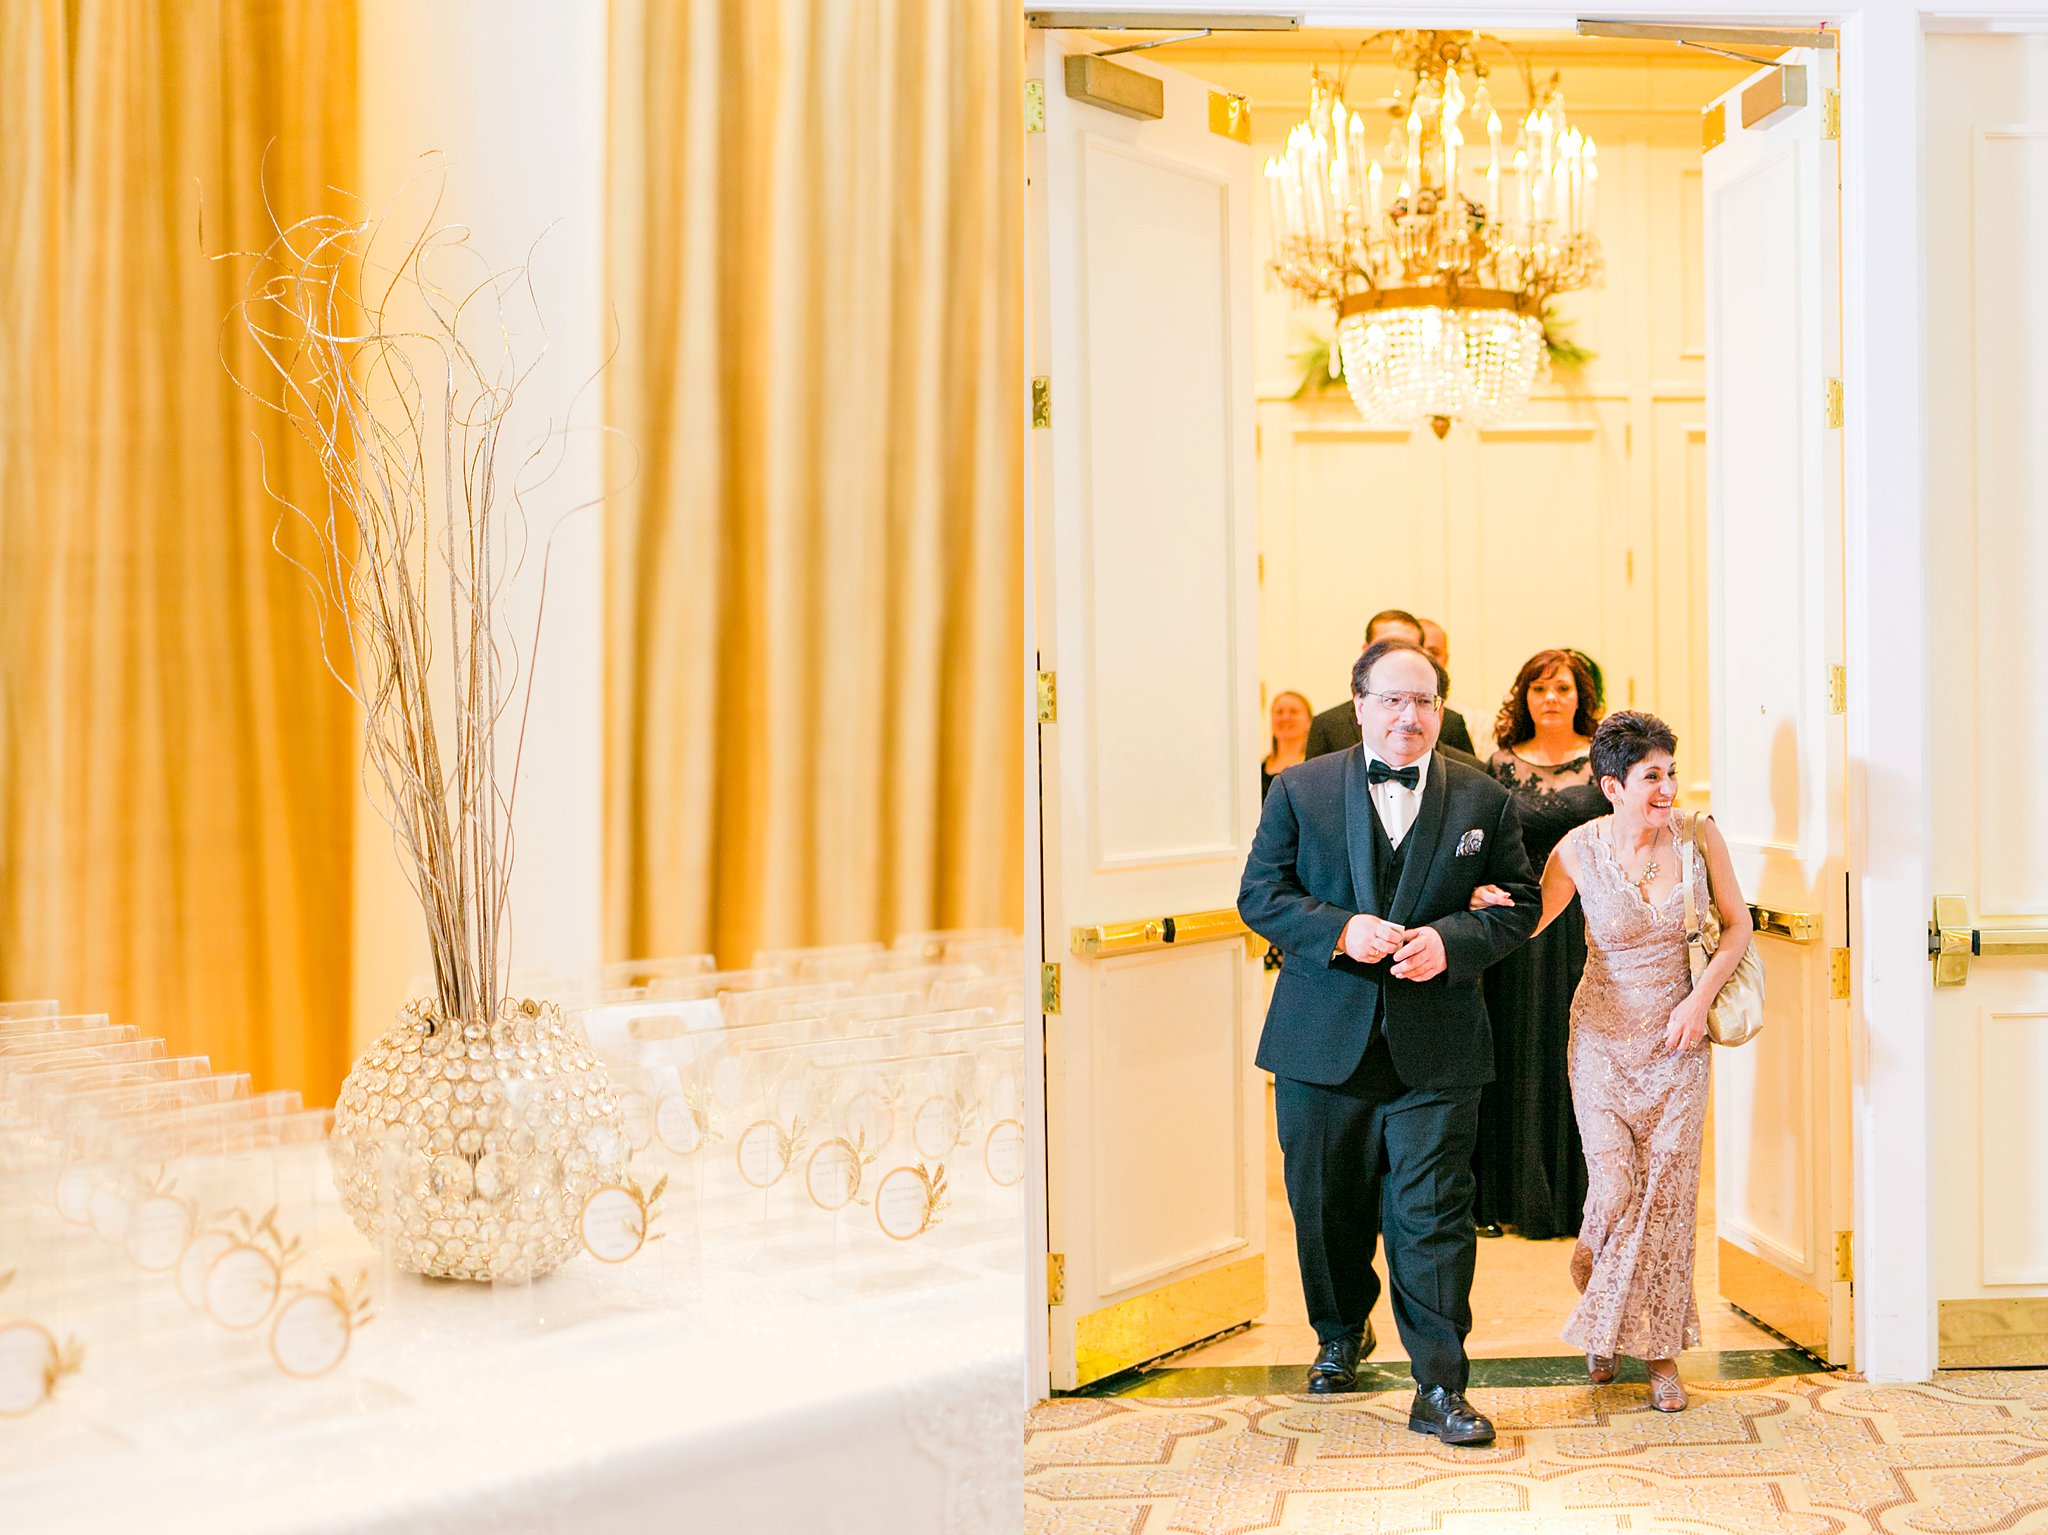 Mayflower Hotel Wedding Photos DC Pink & Gold Winter Wedding Tori & Tyler-434_photo.jpg